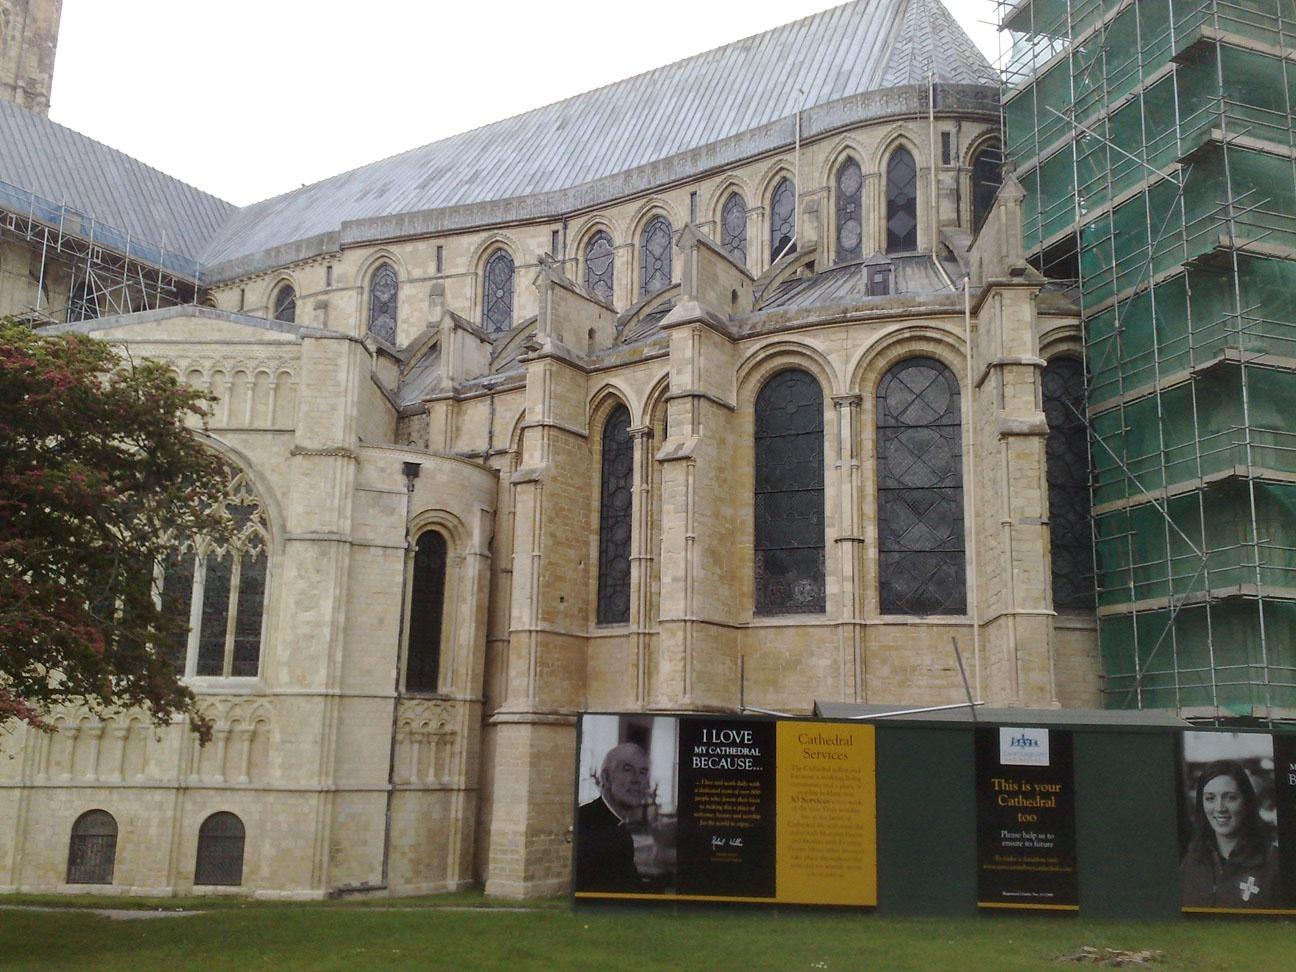 Canterbury Cathedral (undergoing repairs)